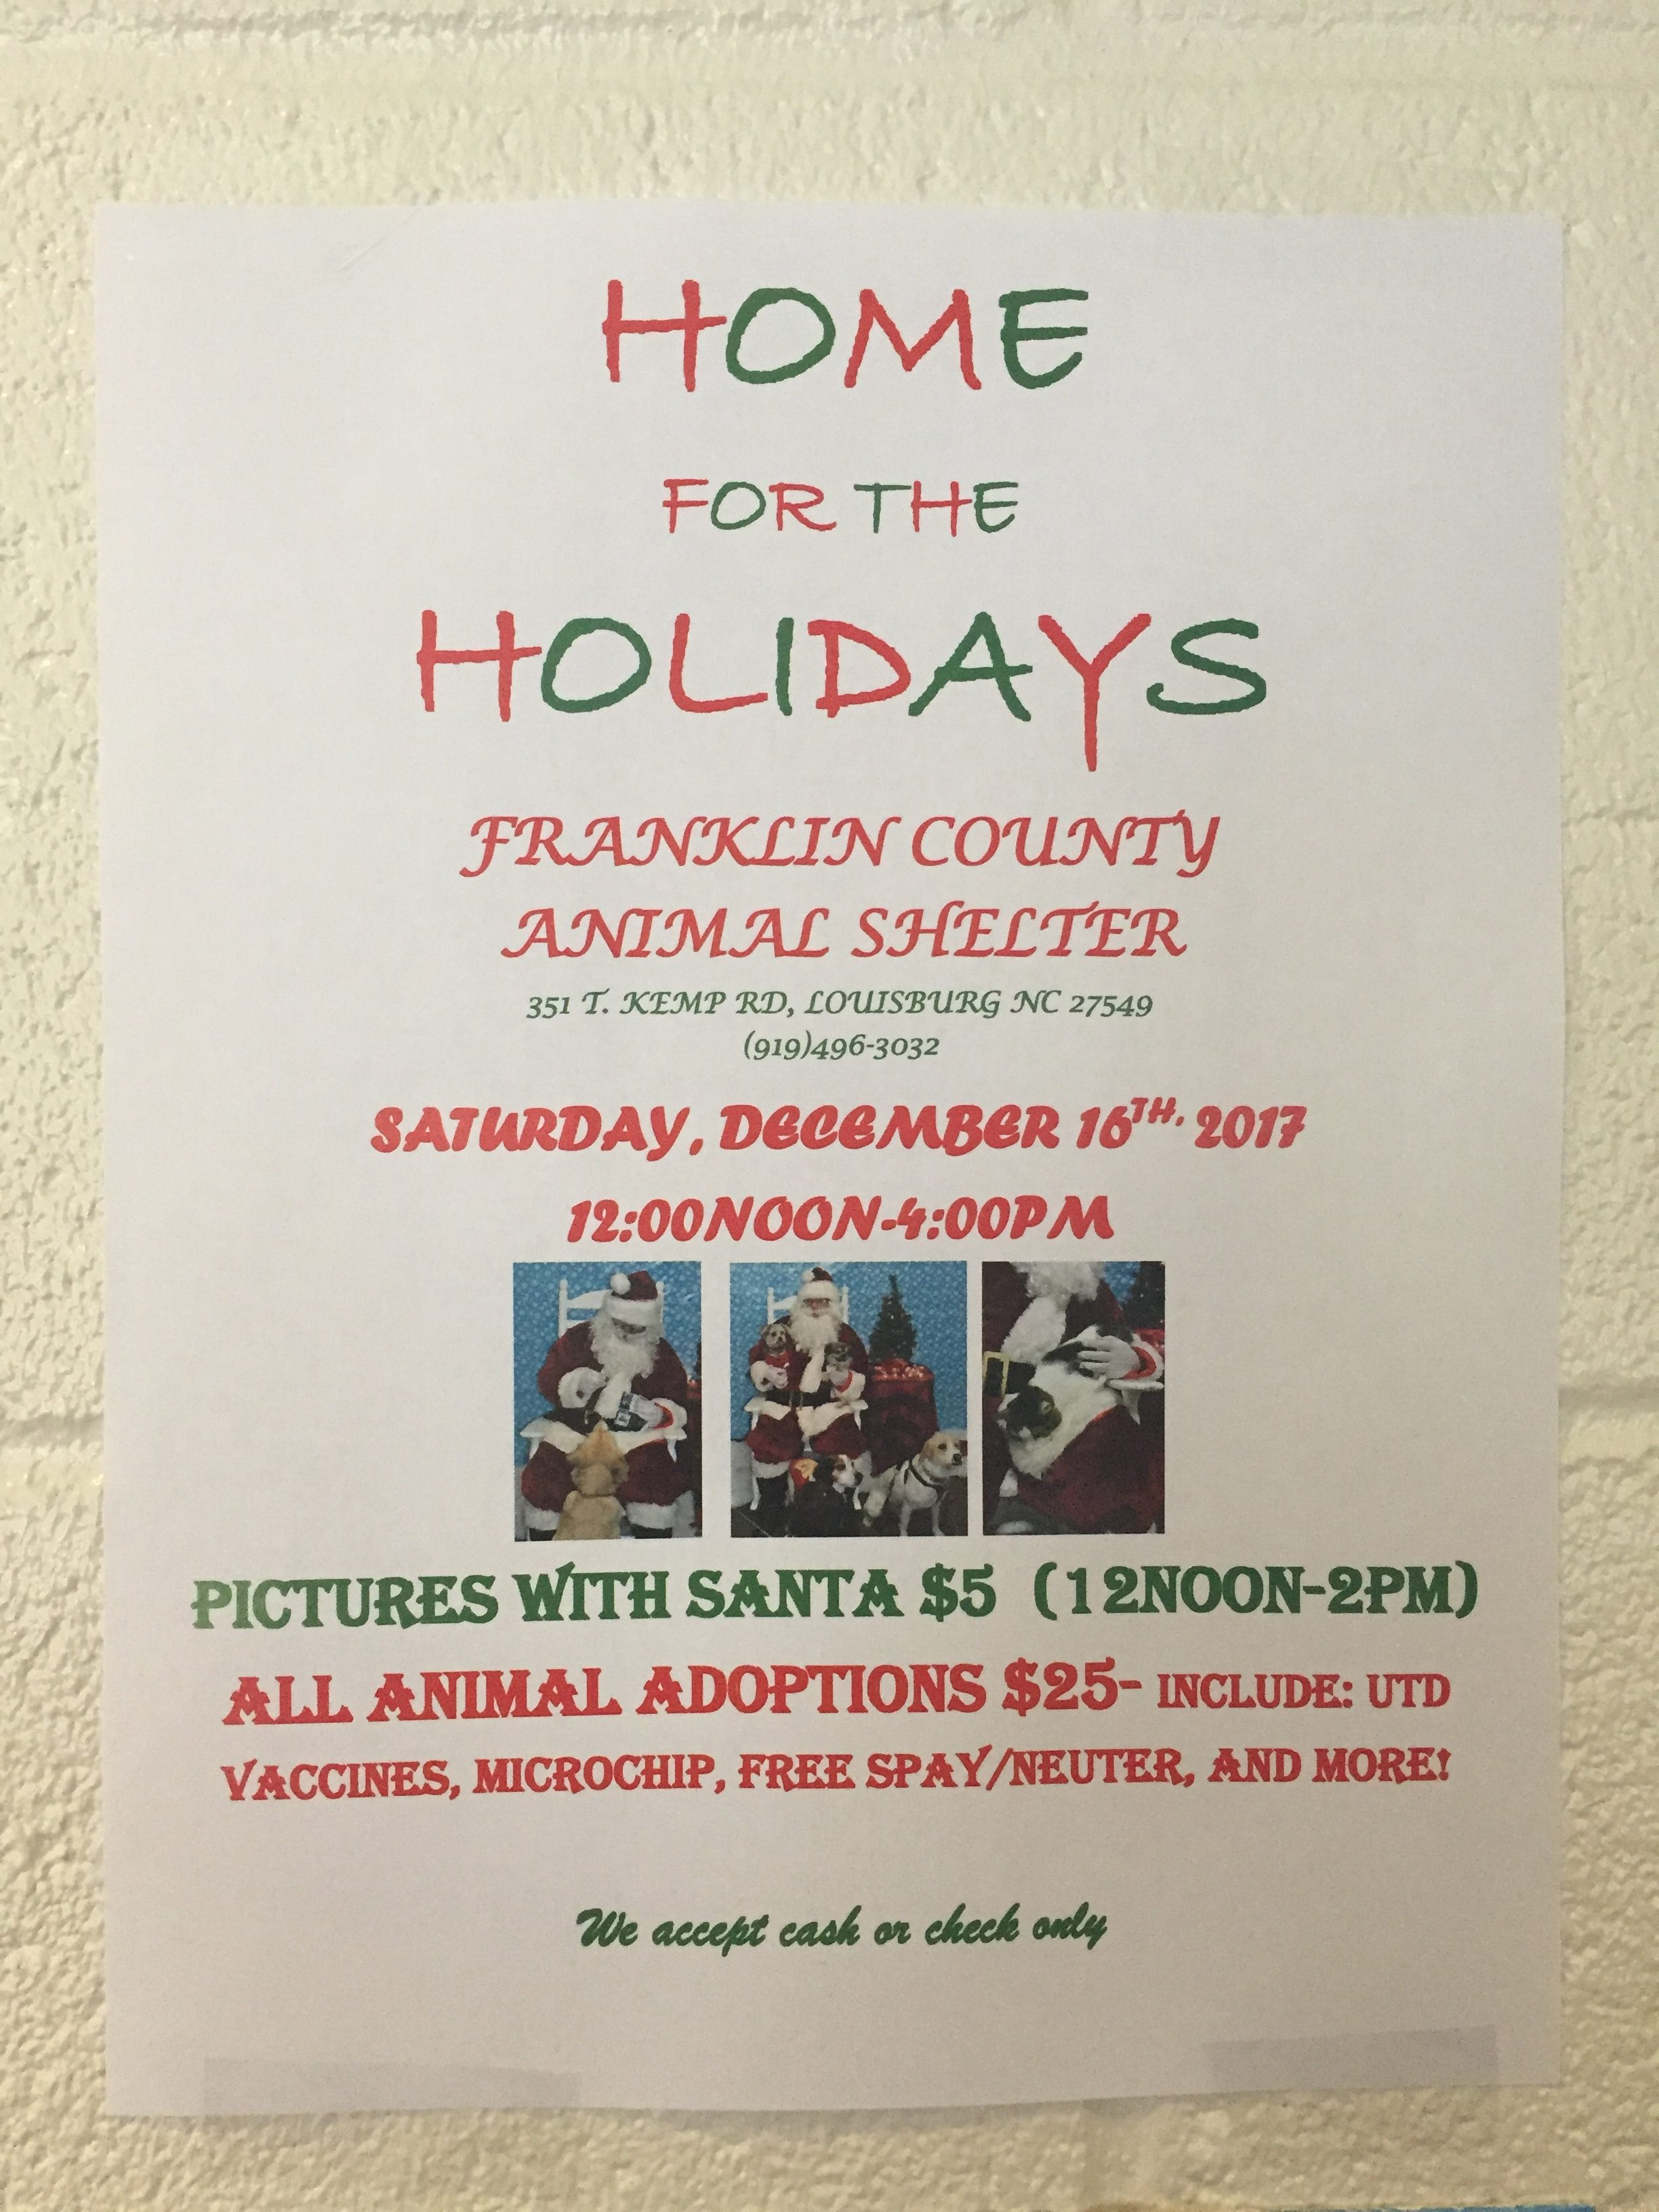 Santa Photos With Pets Event Is Dec 16 The Grey Area News